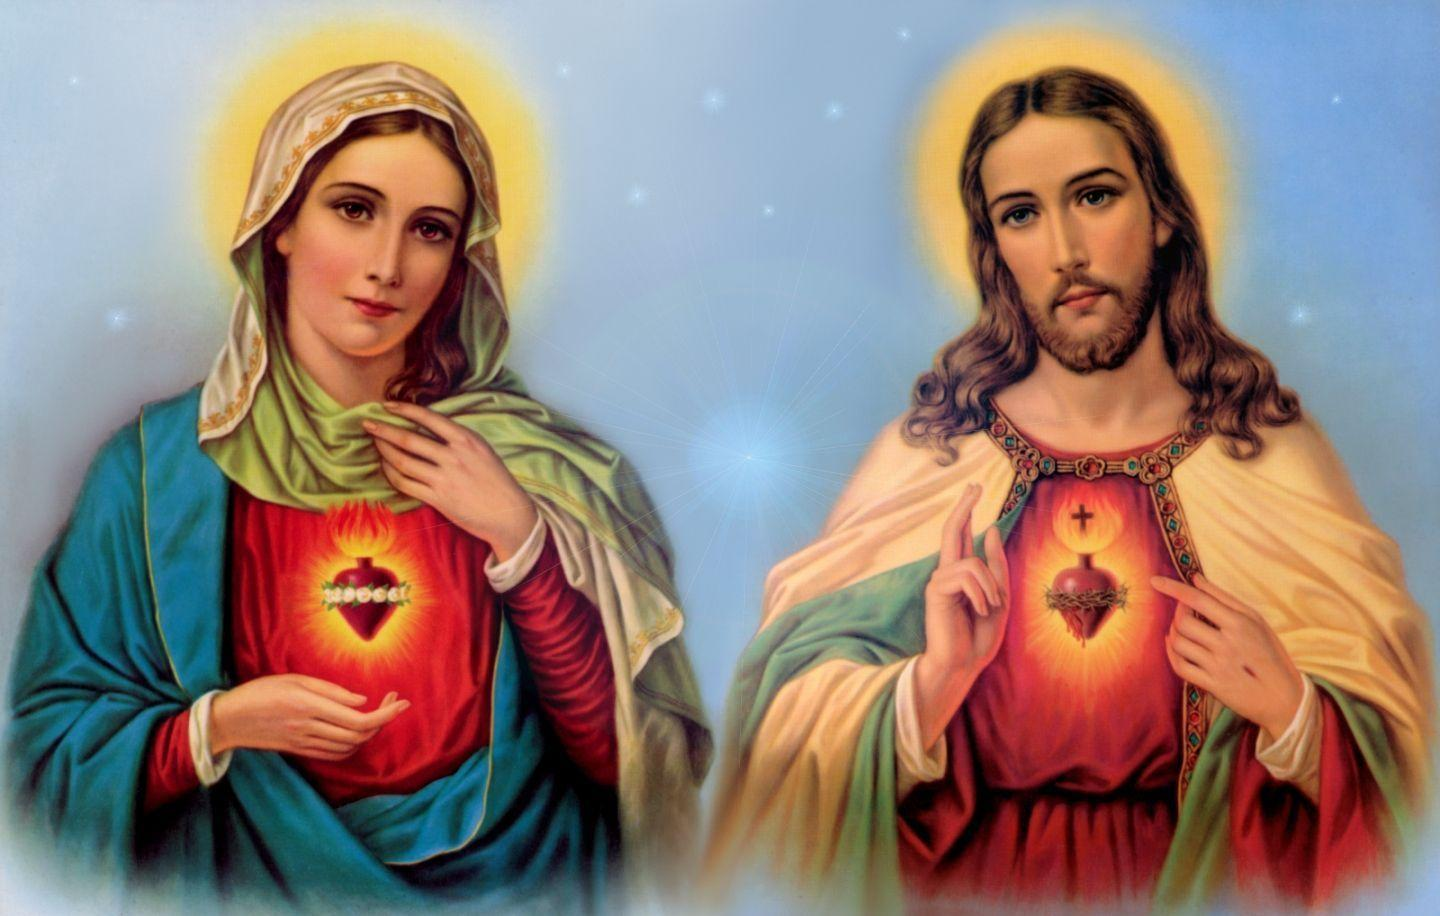 the intercession of christ and the virgin mary with god the father Prayer for the intercession of the blessed virgin mary may we be assisted, we beseech thee, o lord, by the worshipful intercession of thy glorious mother, the ever-virgin mary that we, who.